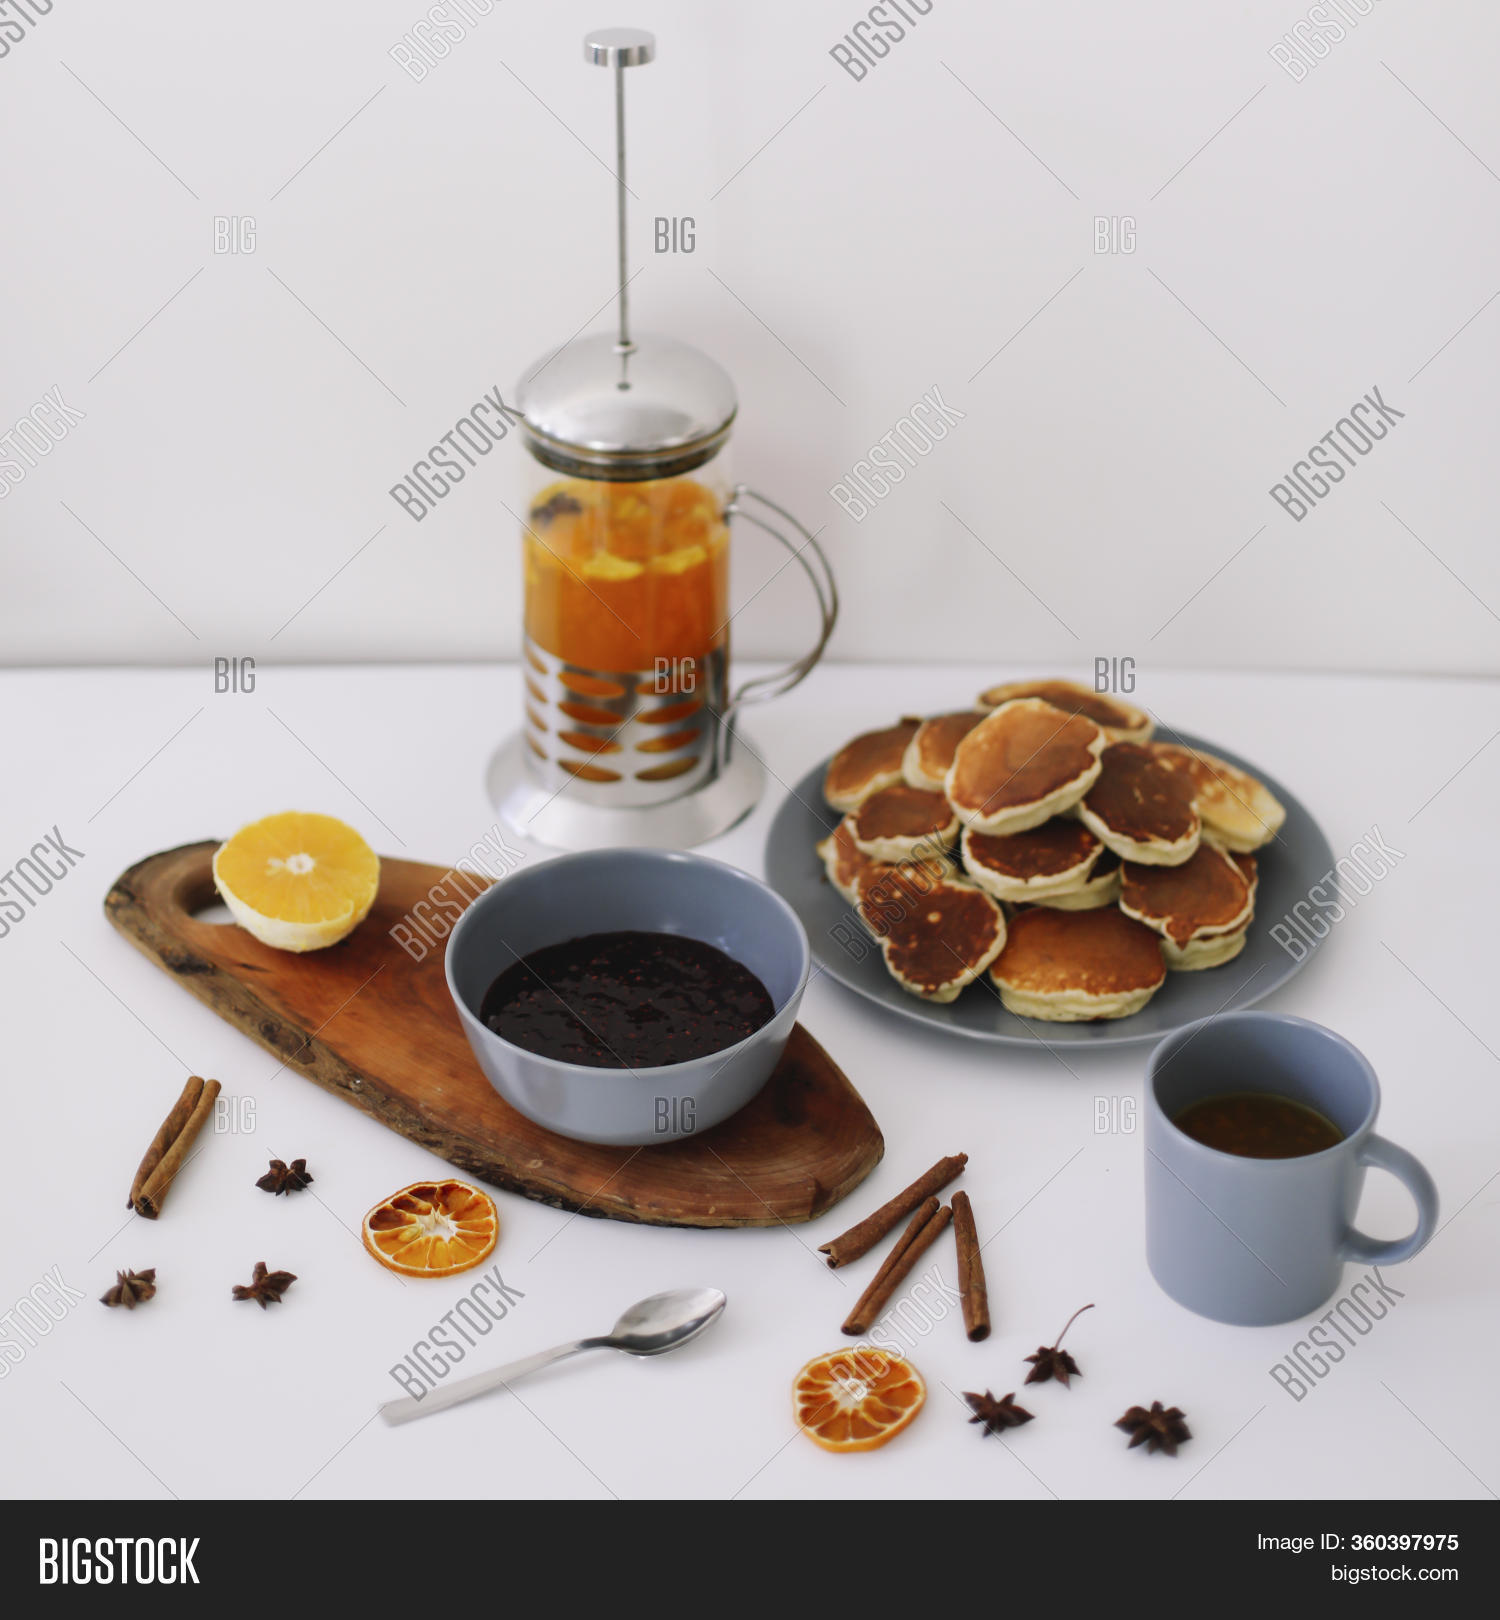 Tasty Breakfast Home Image Photo Free Trial Bigstock